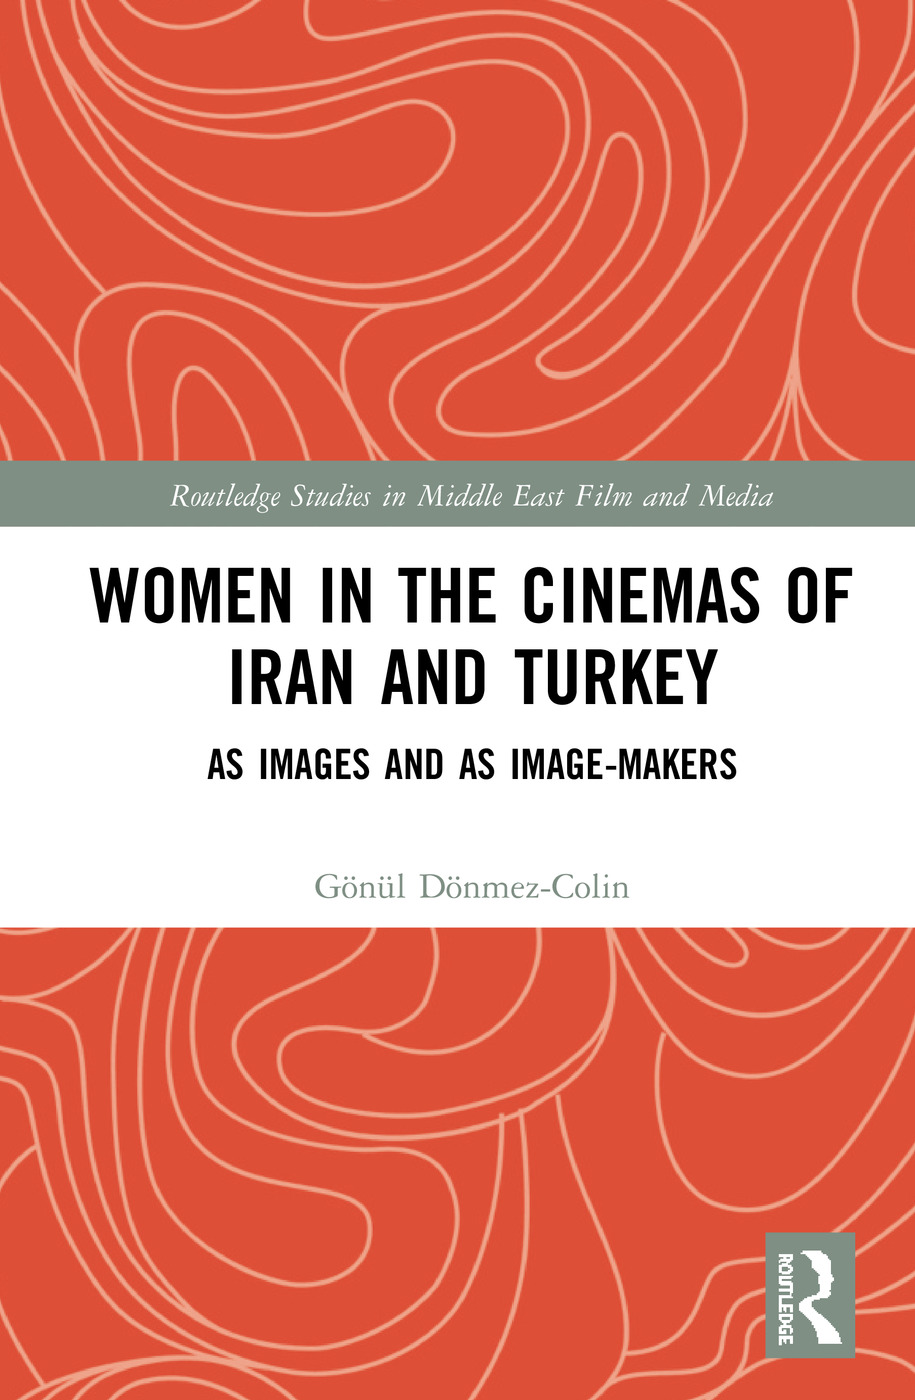 Women in the Cinemas of Iran and Turkey: As Images and as Image-Makers book cover